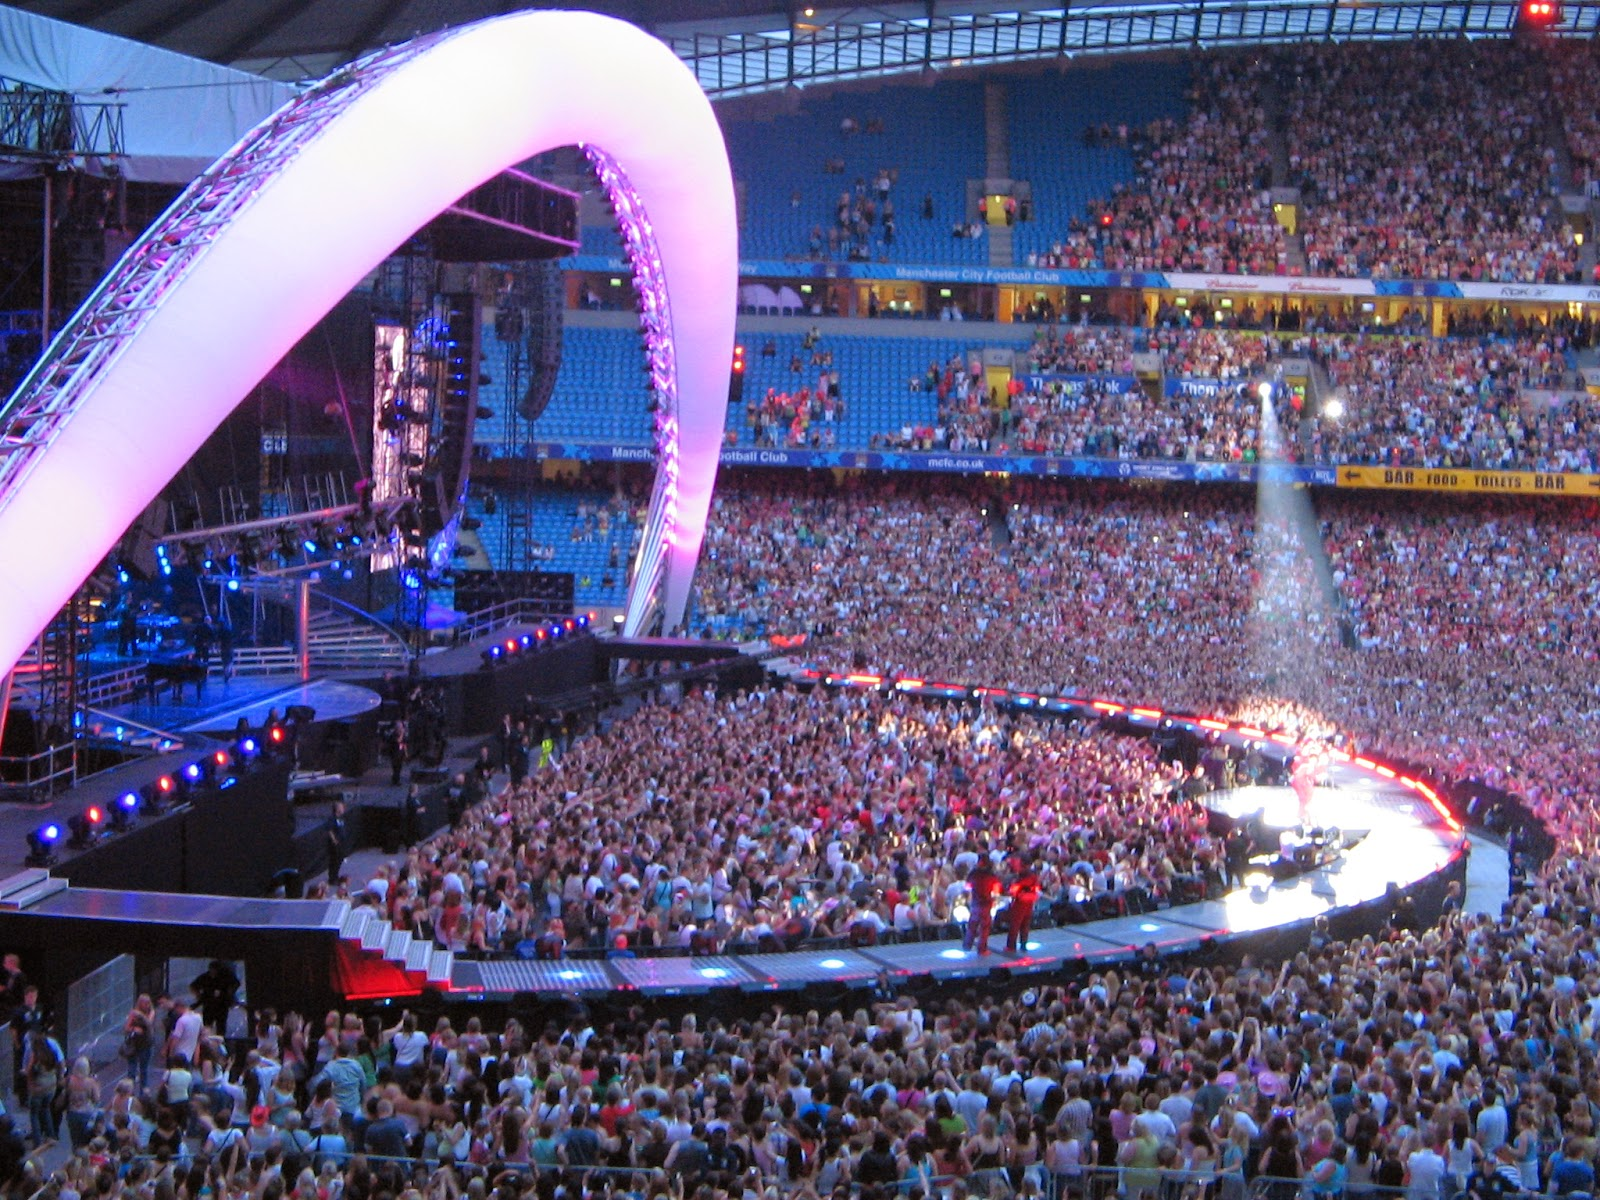 Dissertation title involving Crowd Health and Safety at stadiums?